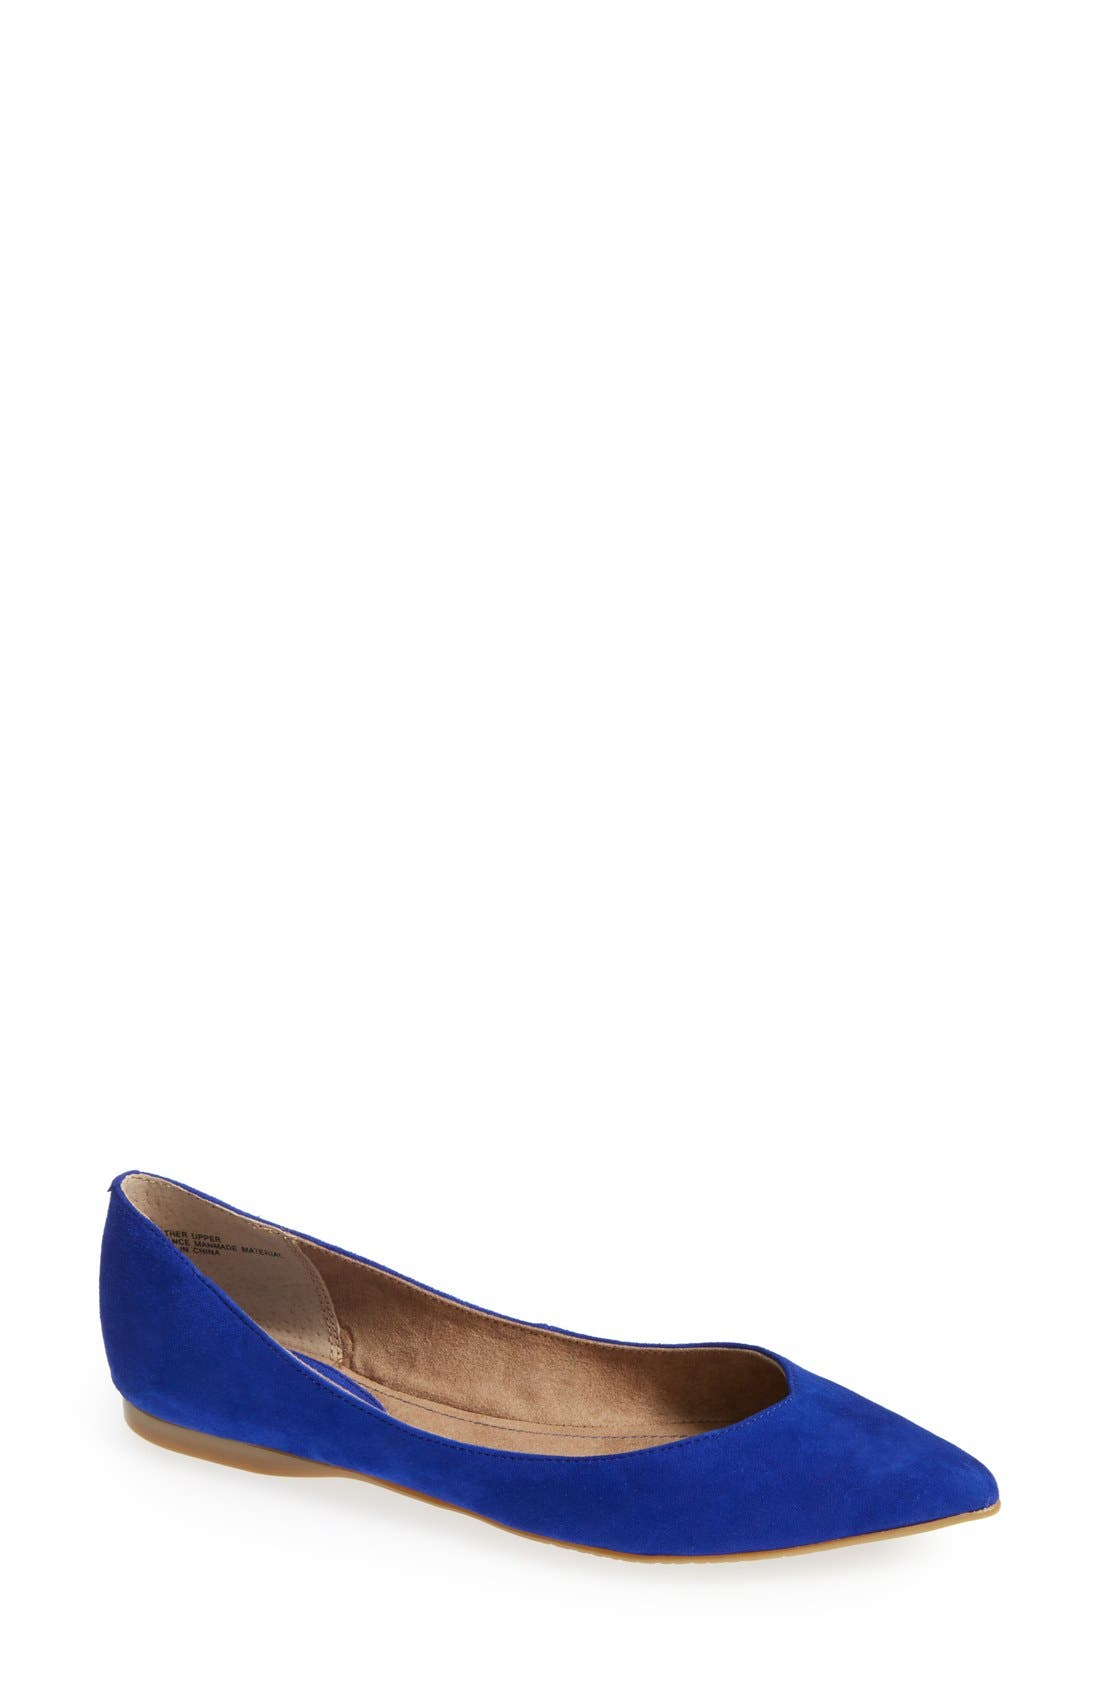 ,                             'Moveover' Pointy Toe Leather Flat,                             Main thumbnail 22, color,                             420